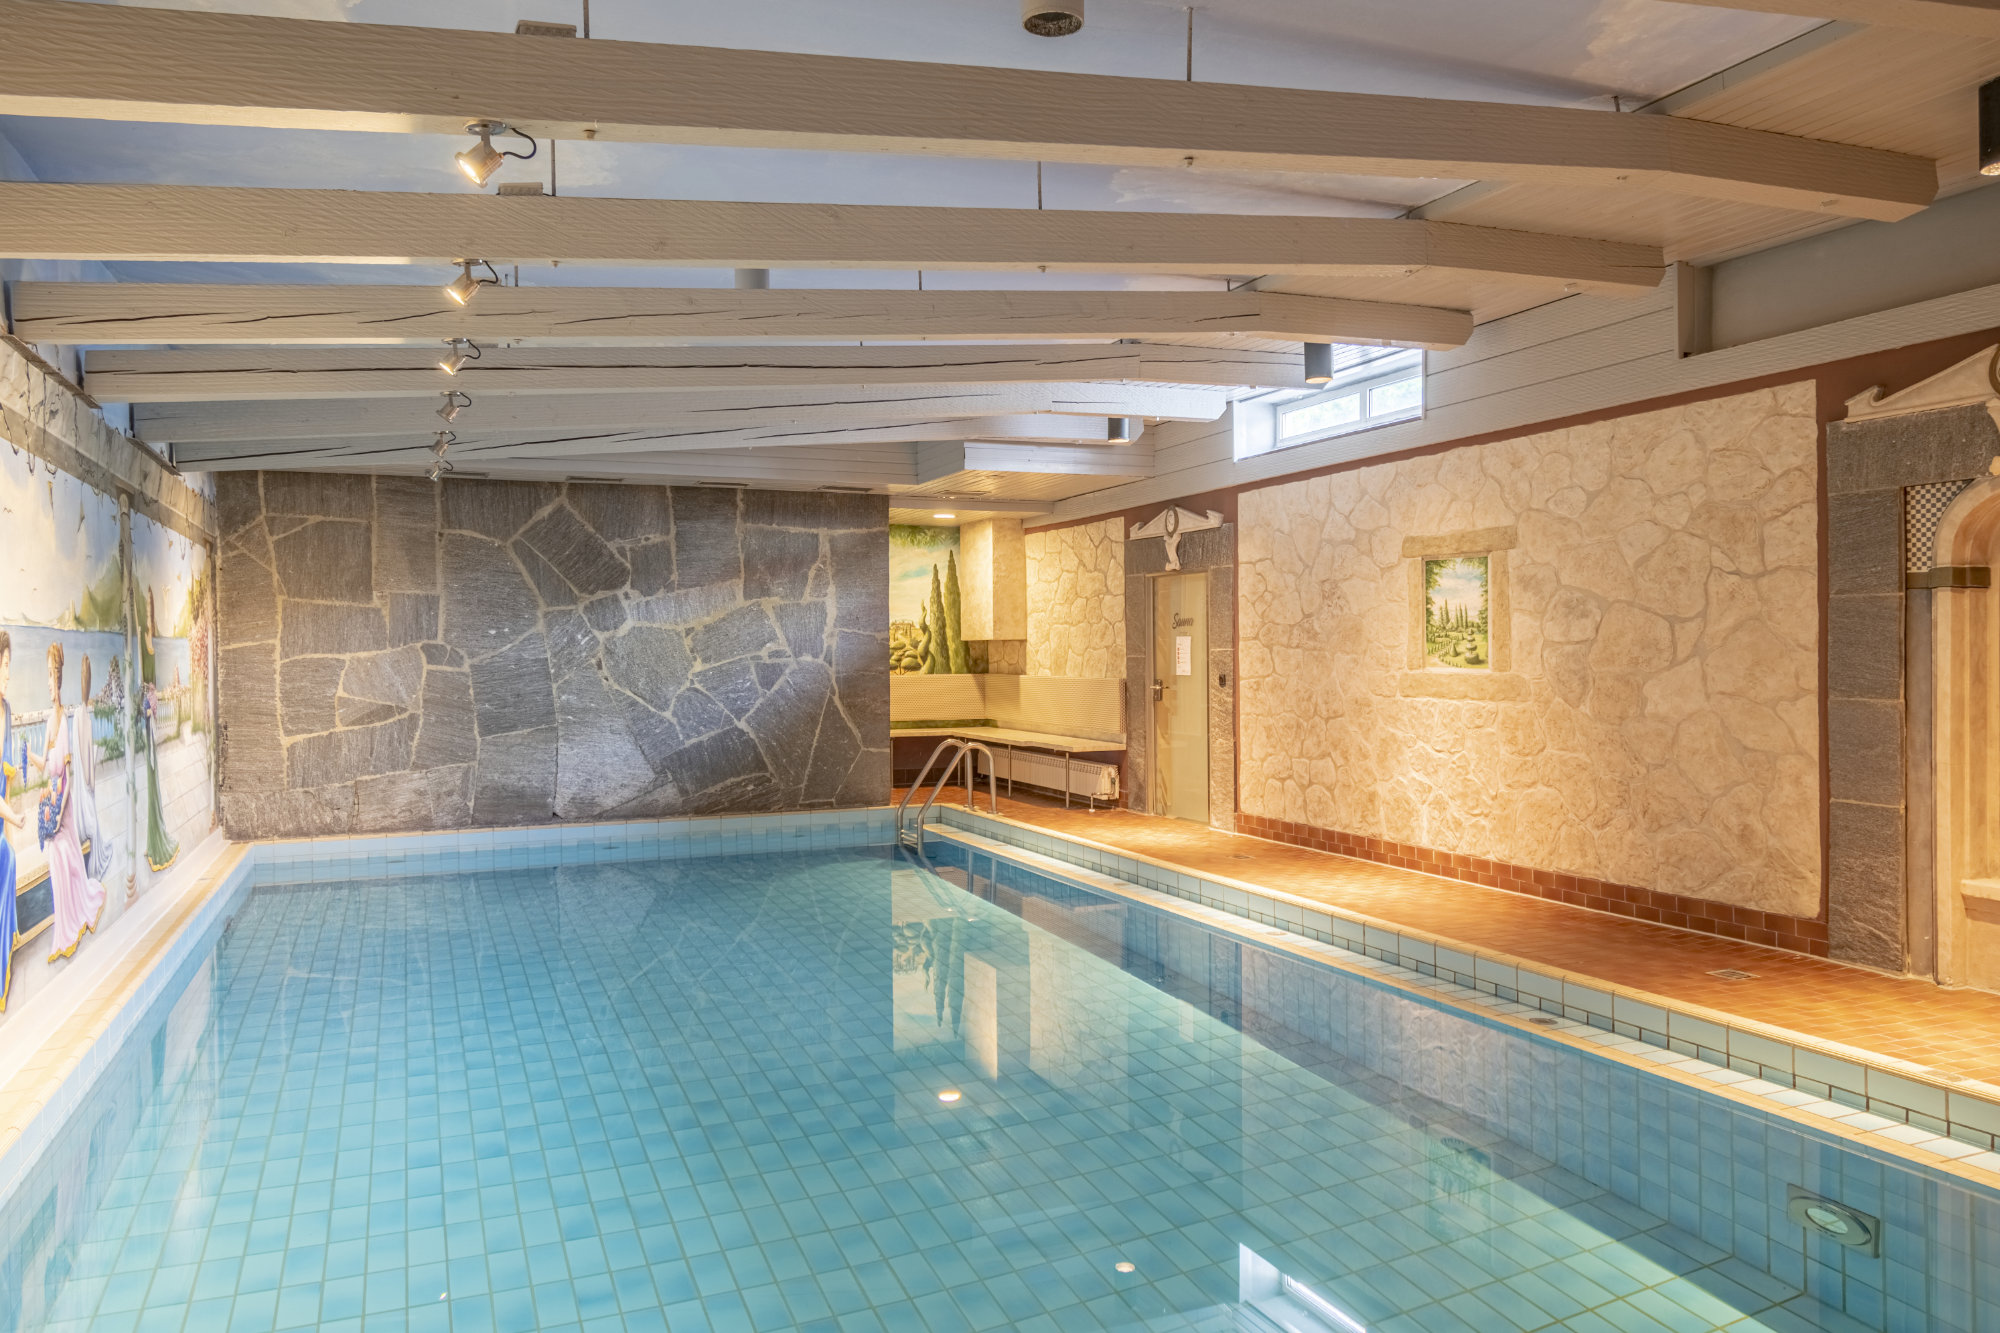 Swimming pool with the way to the sauna